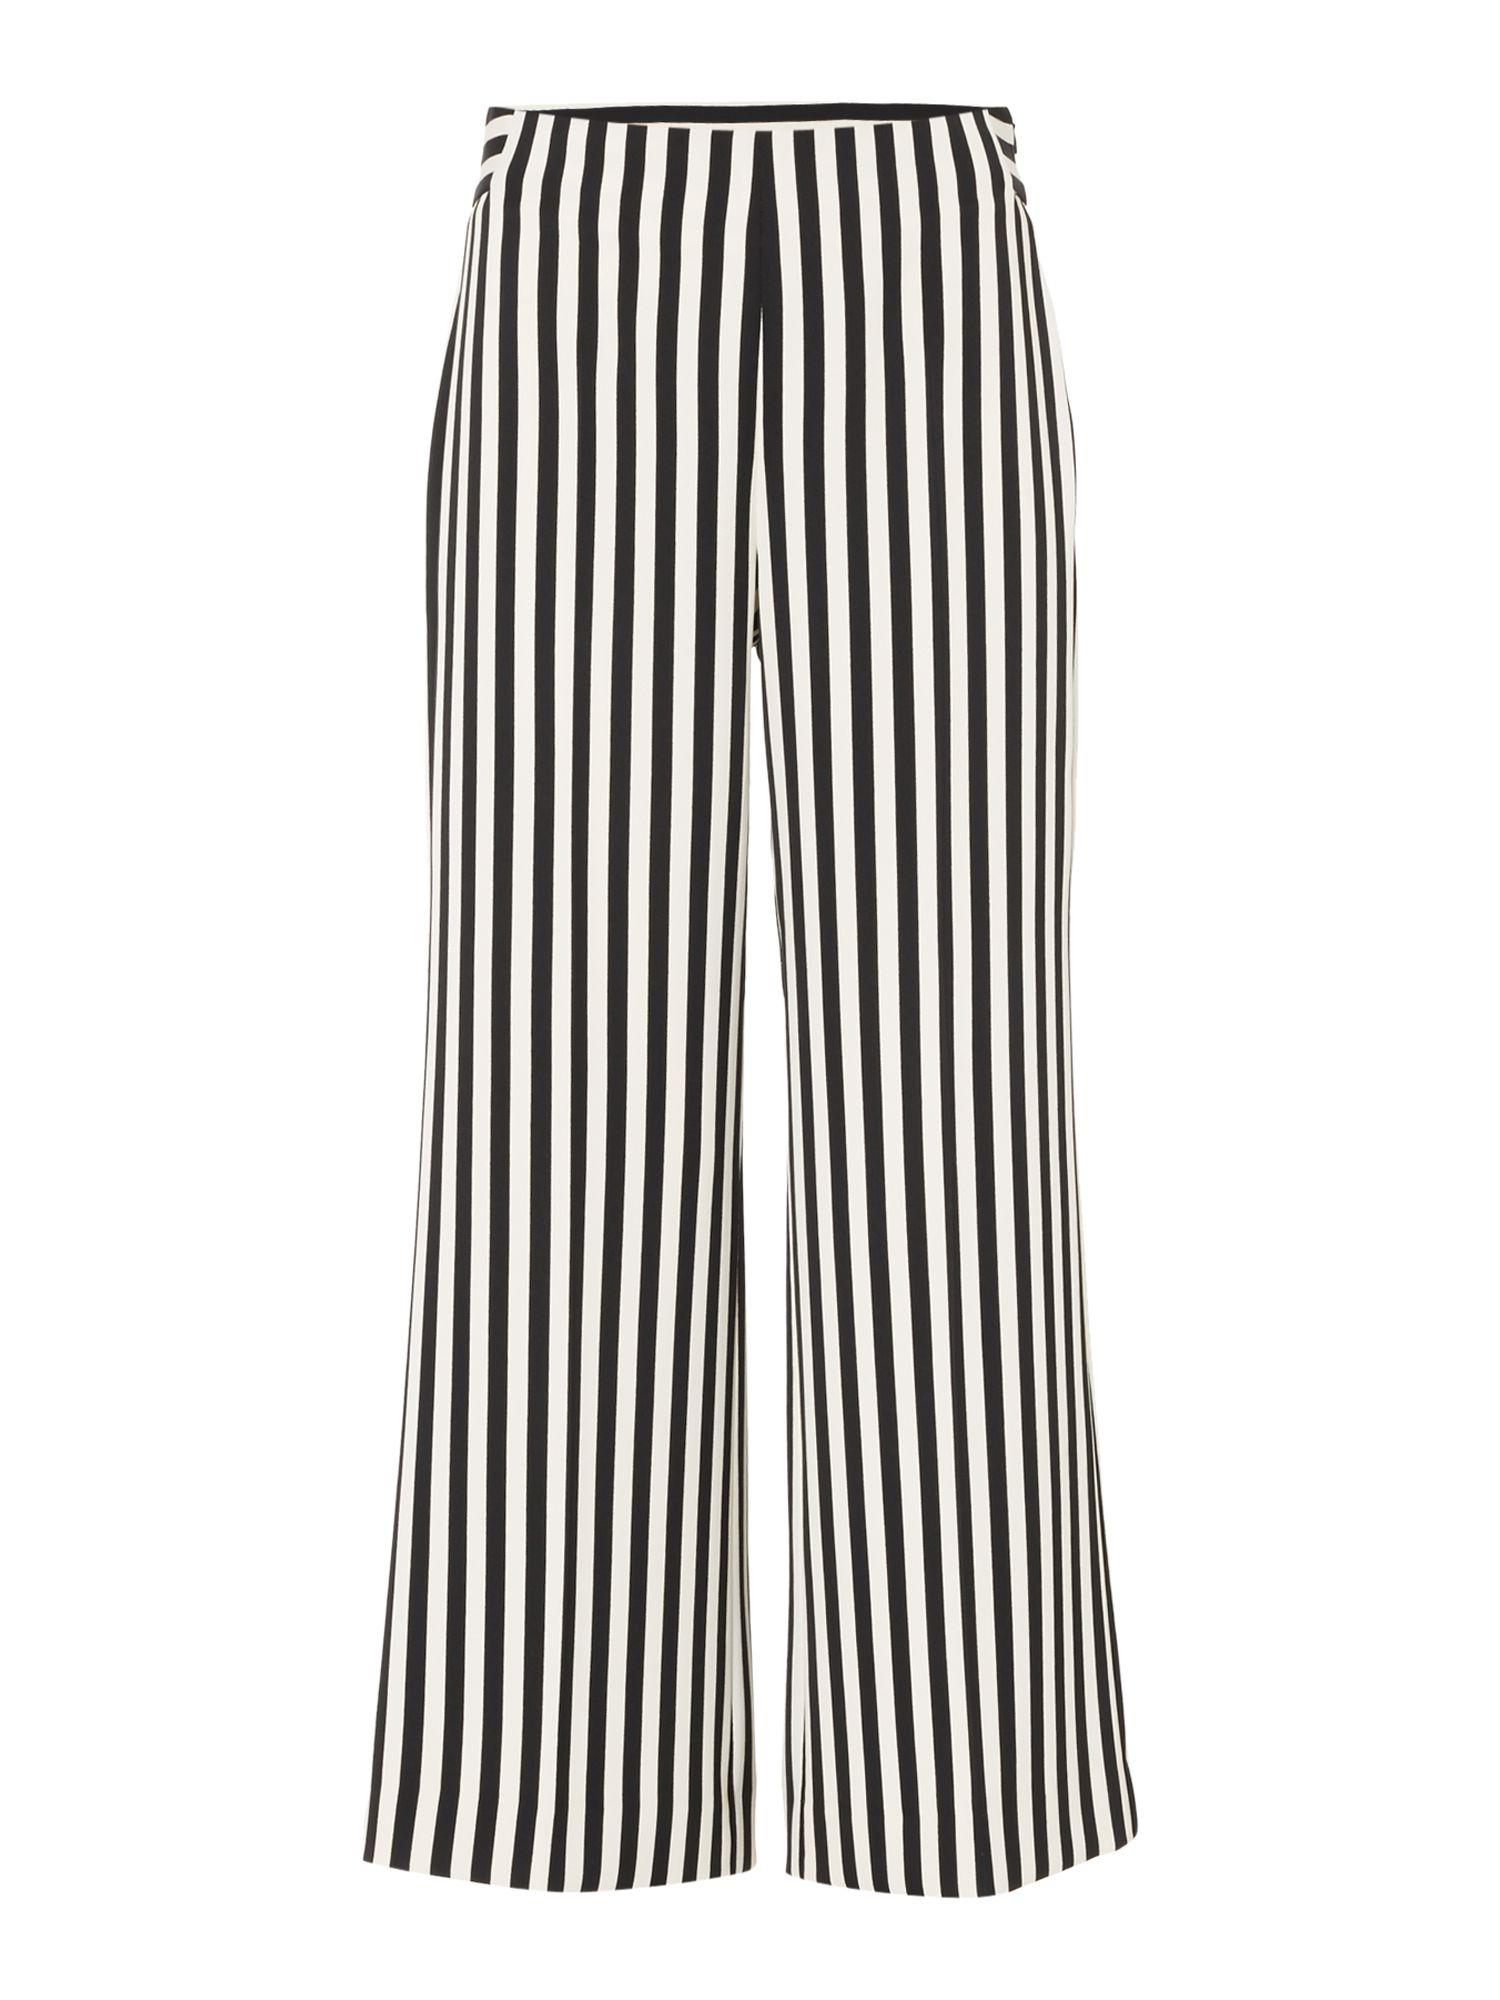 Marella Pino stripe trouser, Black